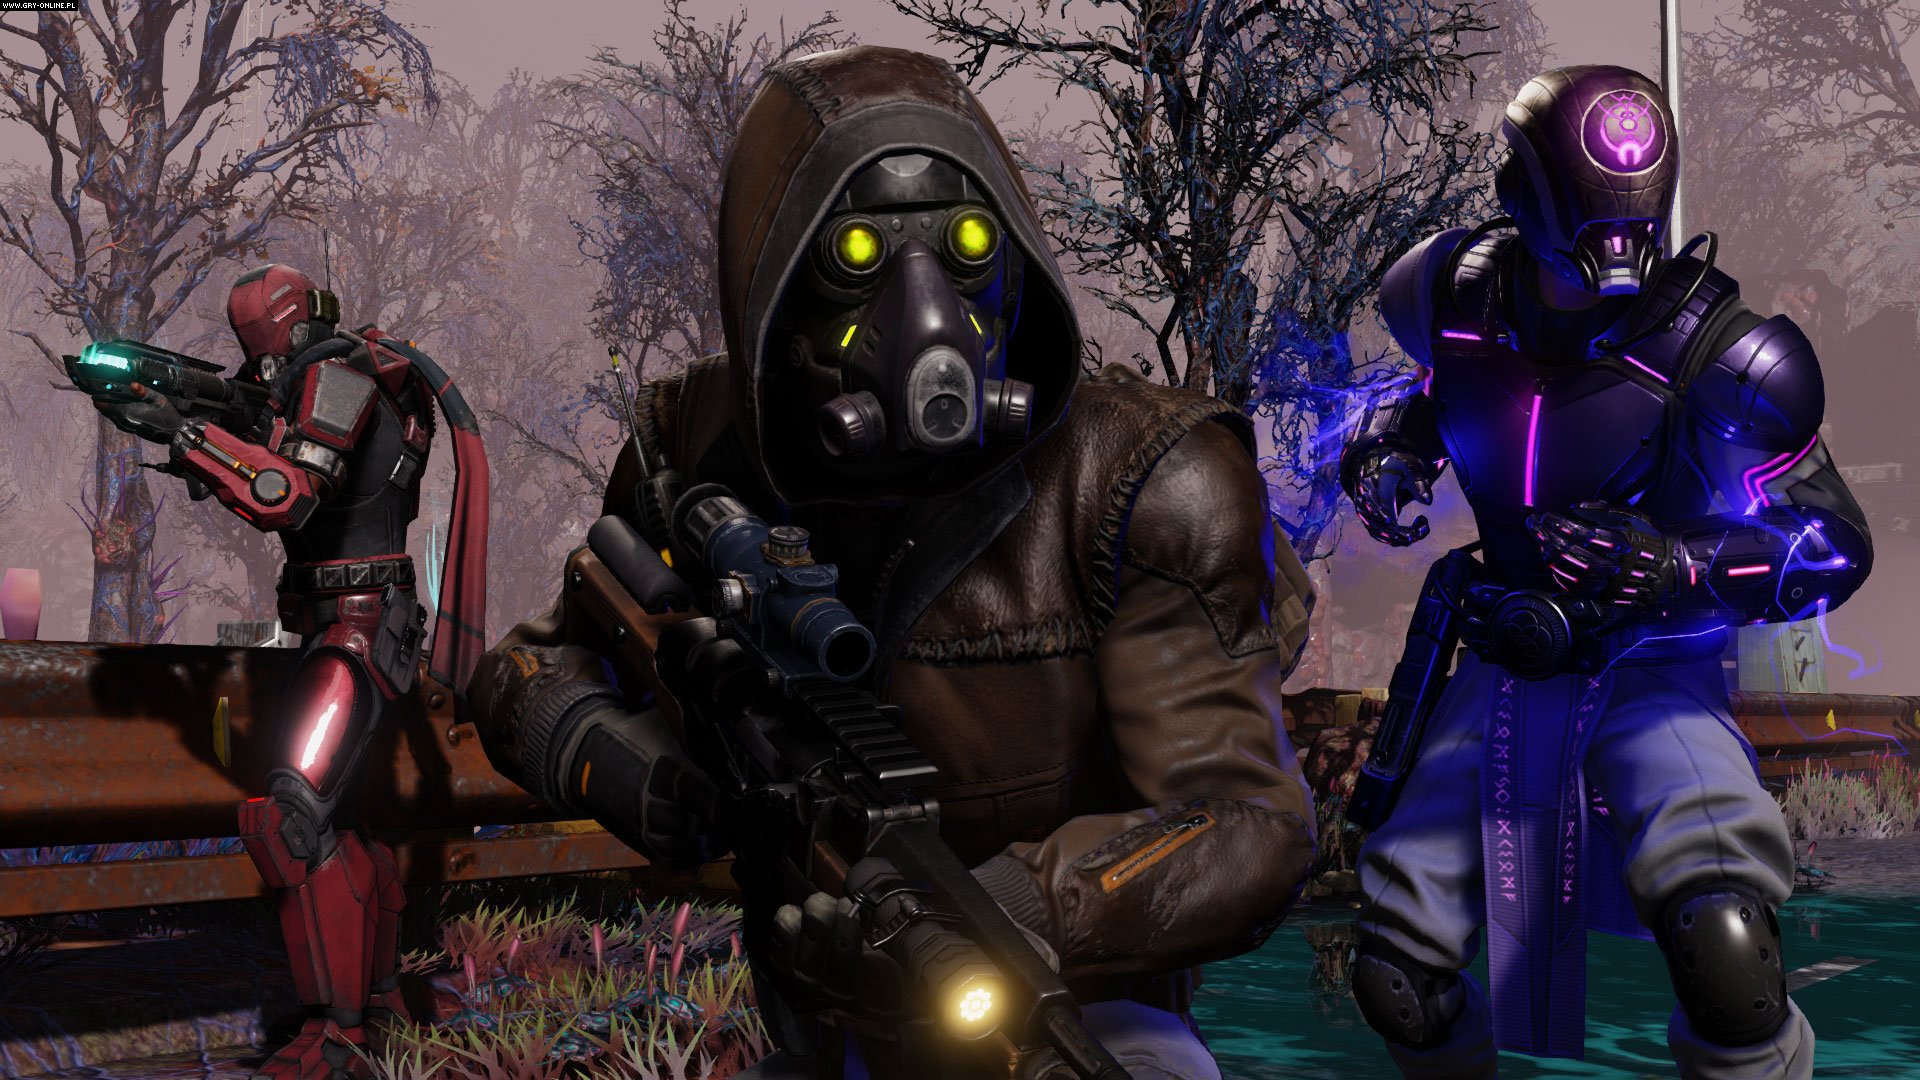 XCOM 2: War of the Chosen PC, PS4, XONE Games Image 23/23, Firaxis Games, 2K Games